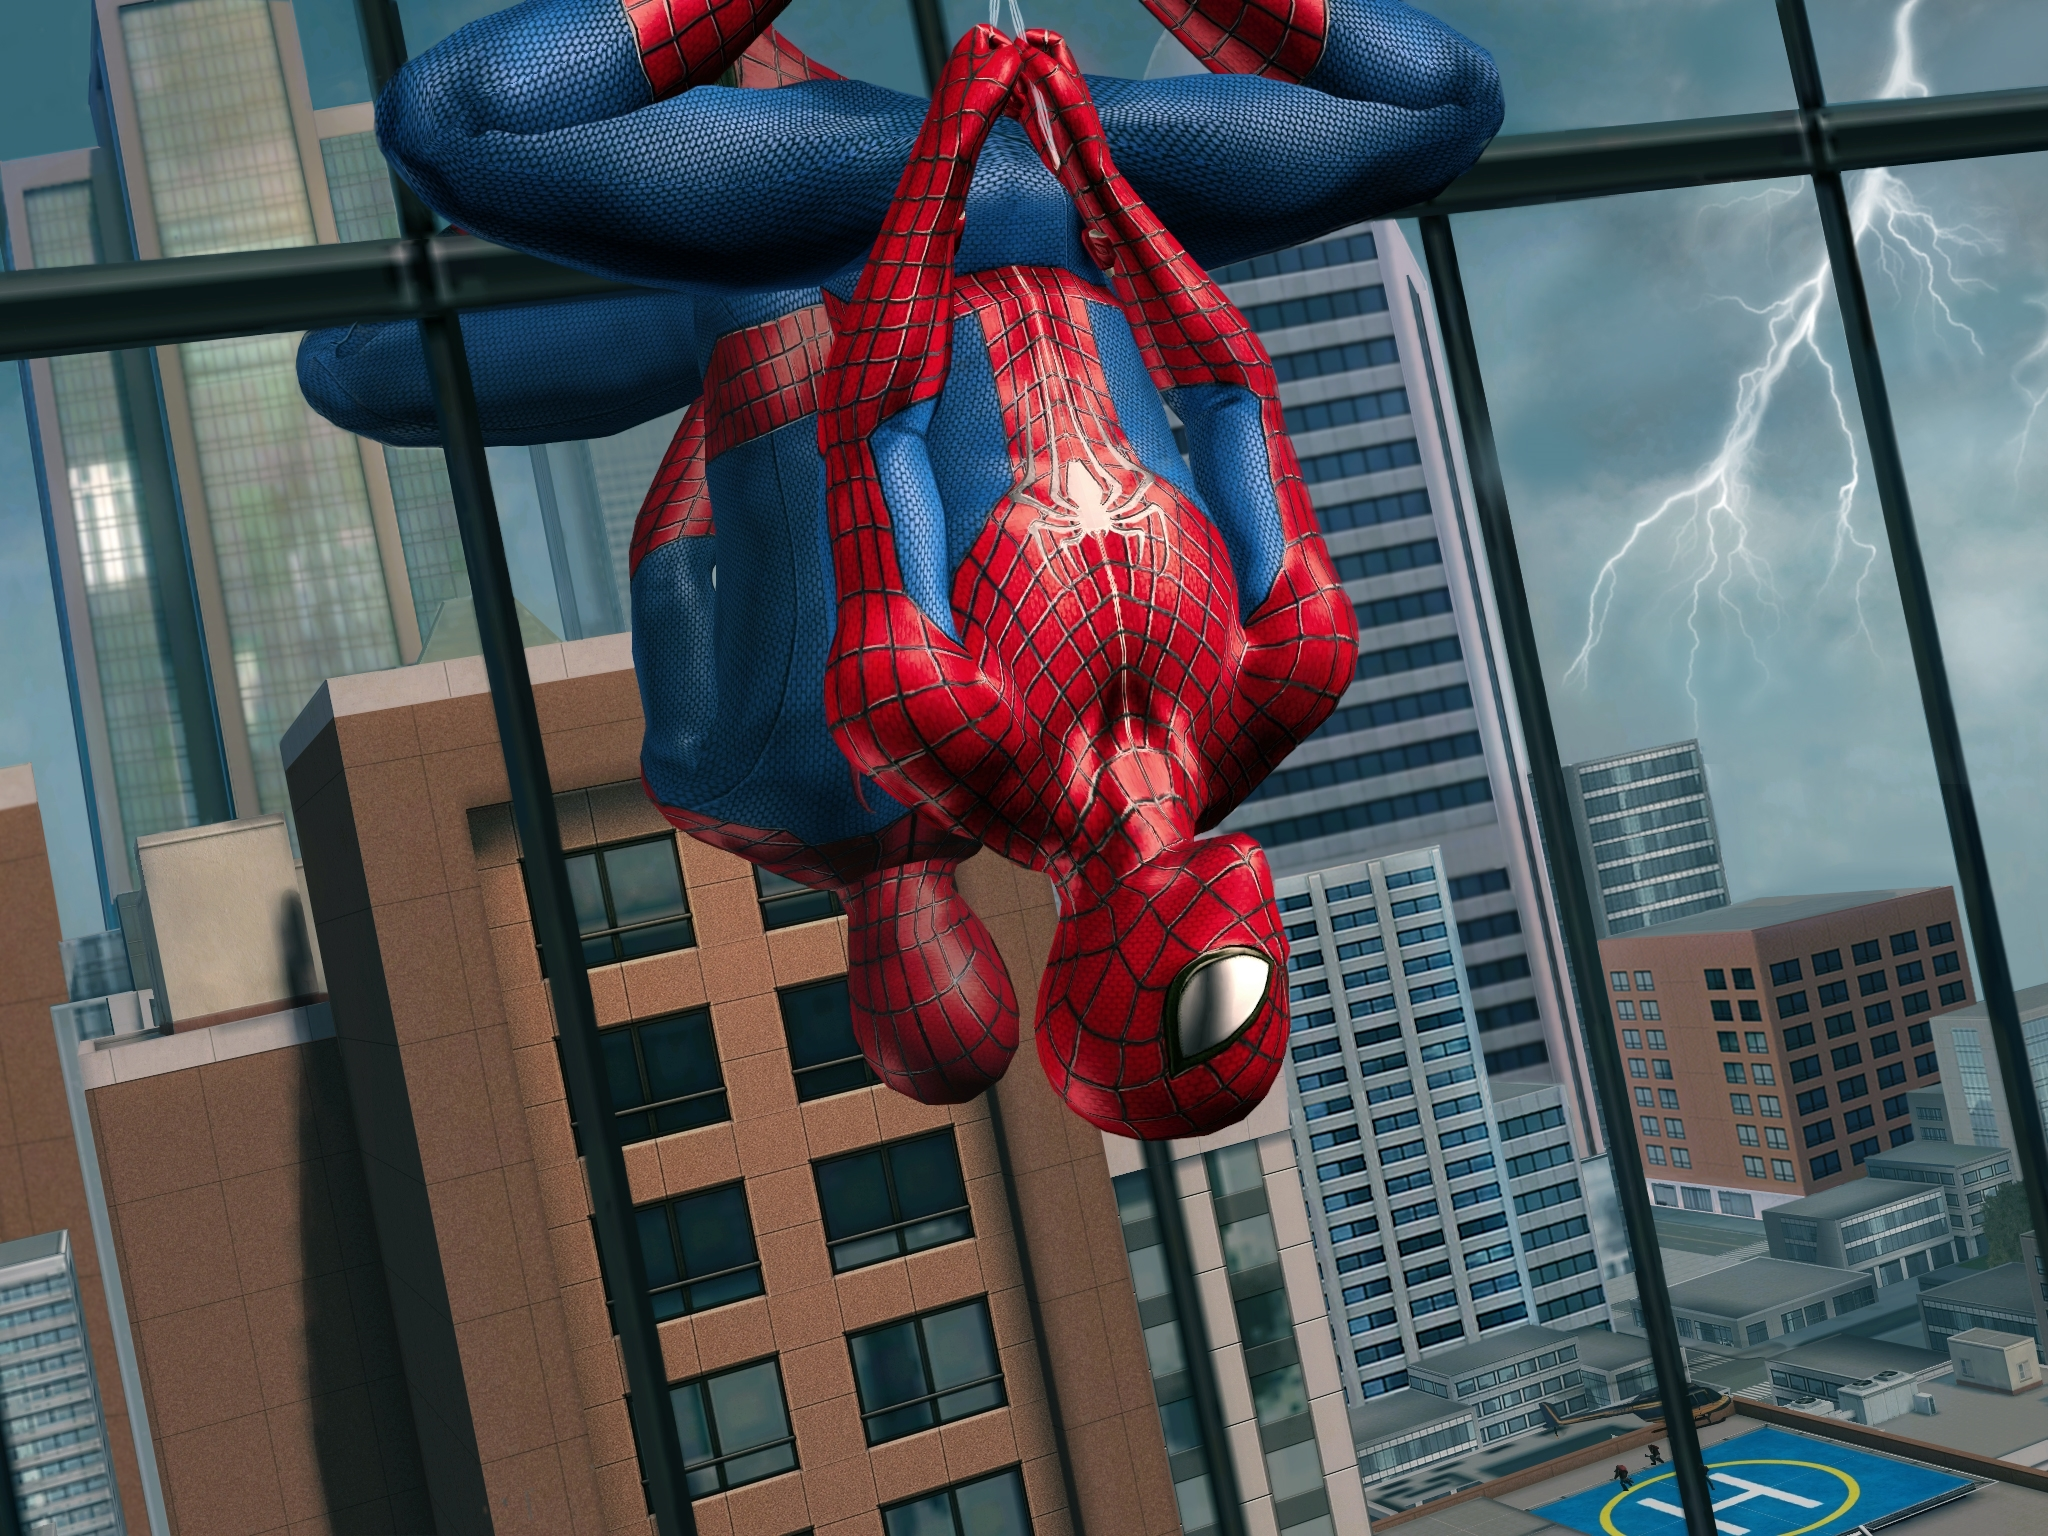 spiderman games hd wallpaper free download